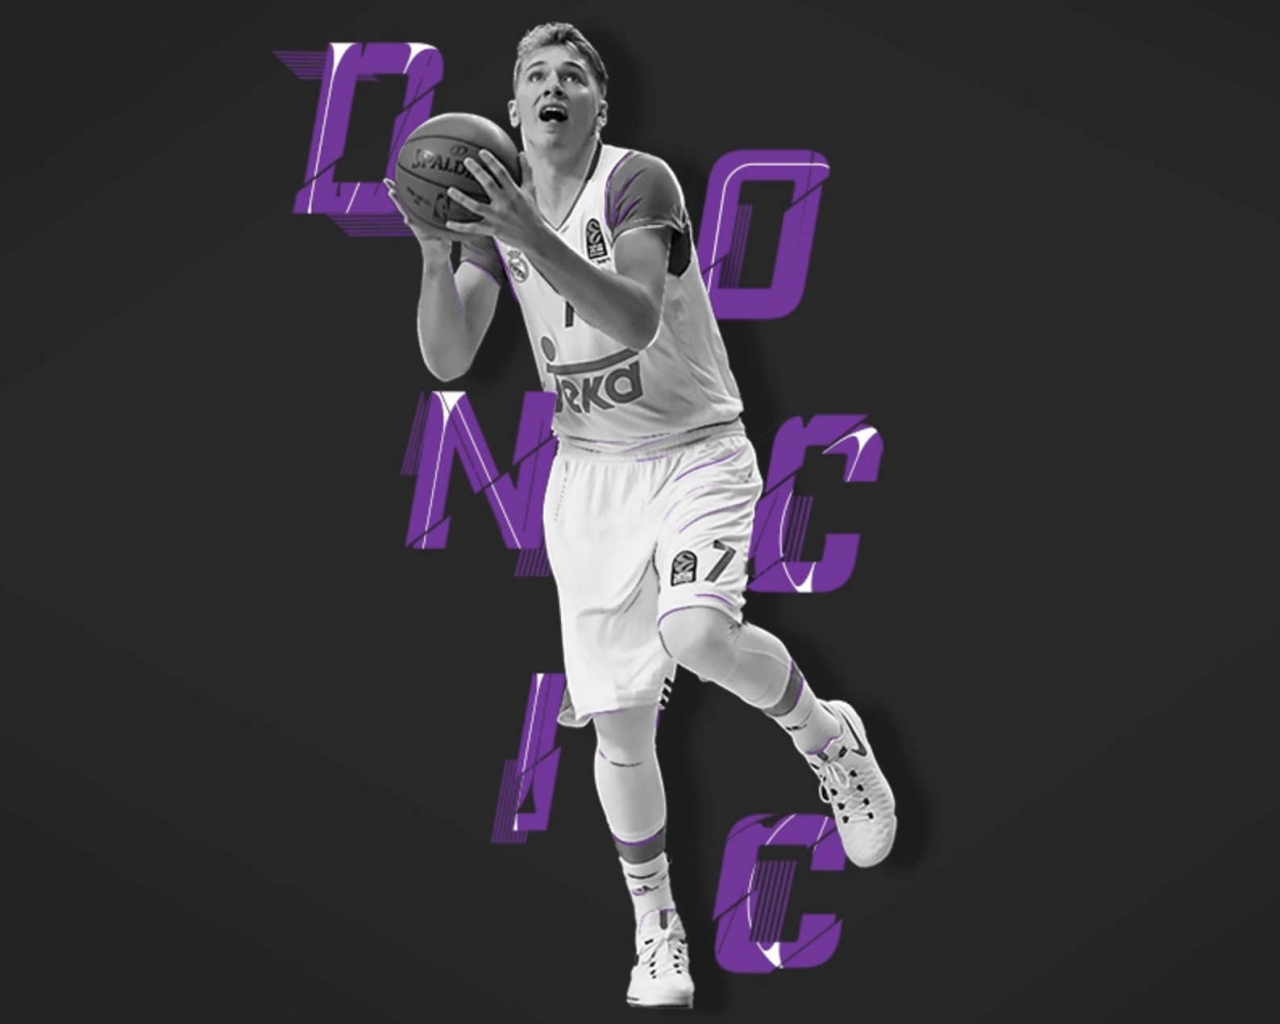 download Get to Know Luka Doncic Sacramento Kings [2340x1270 1280x1024